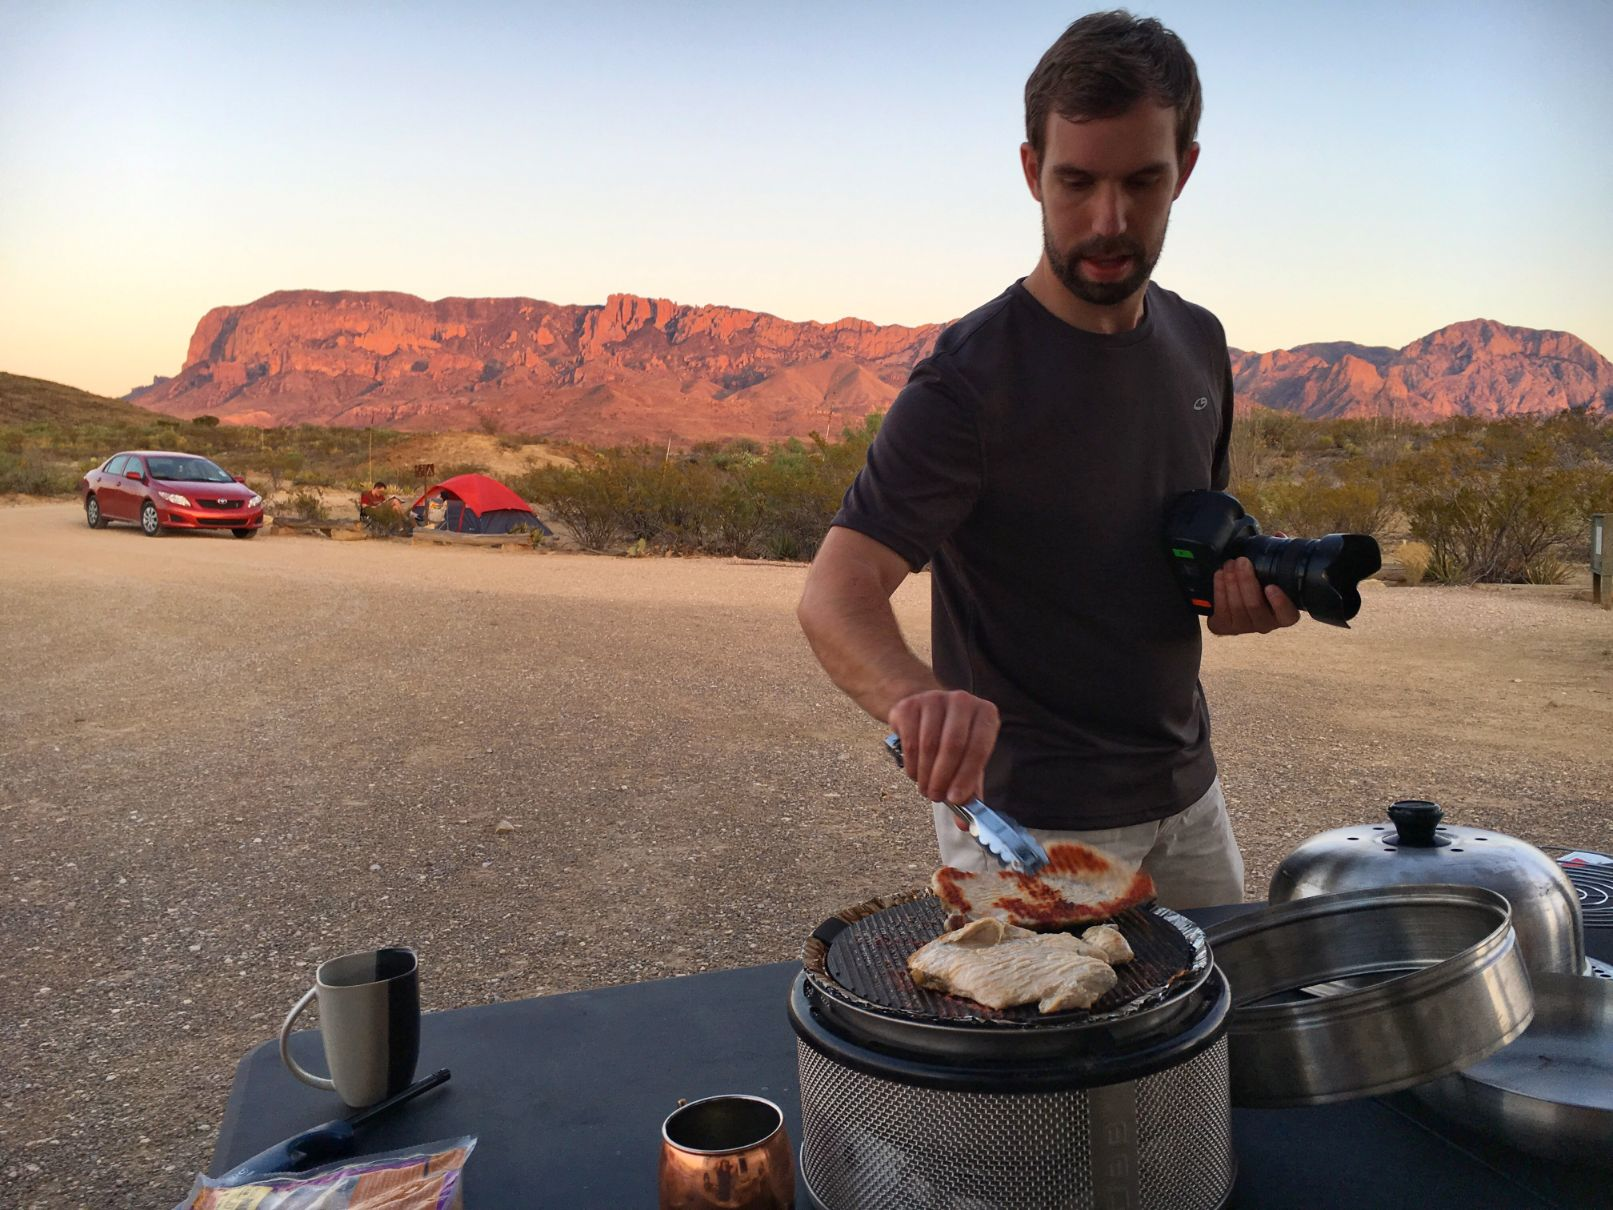 Man grilling with other campers and the mountains in the background.